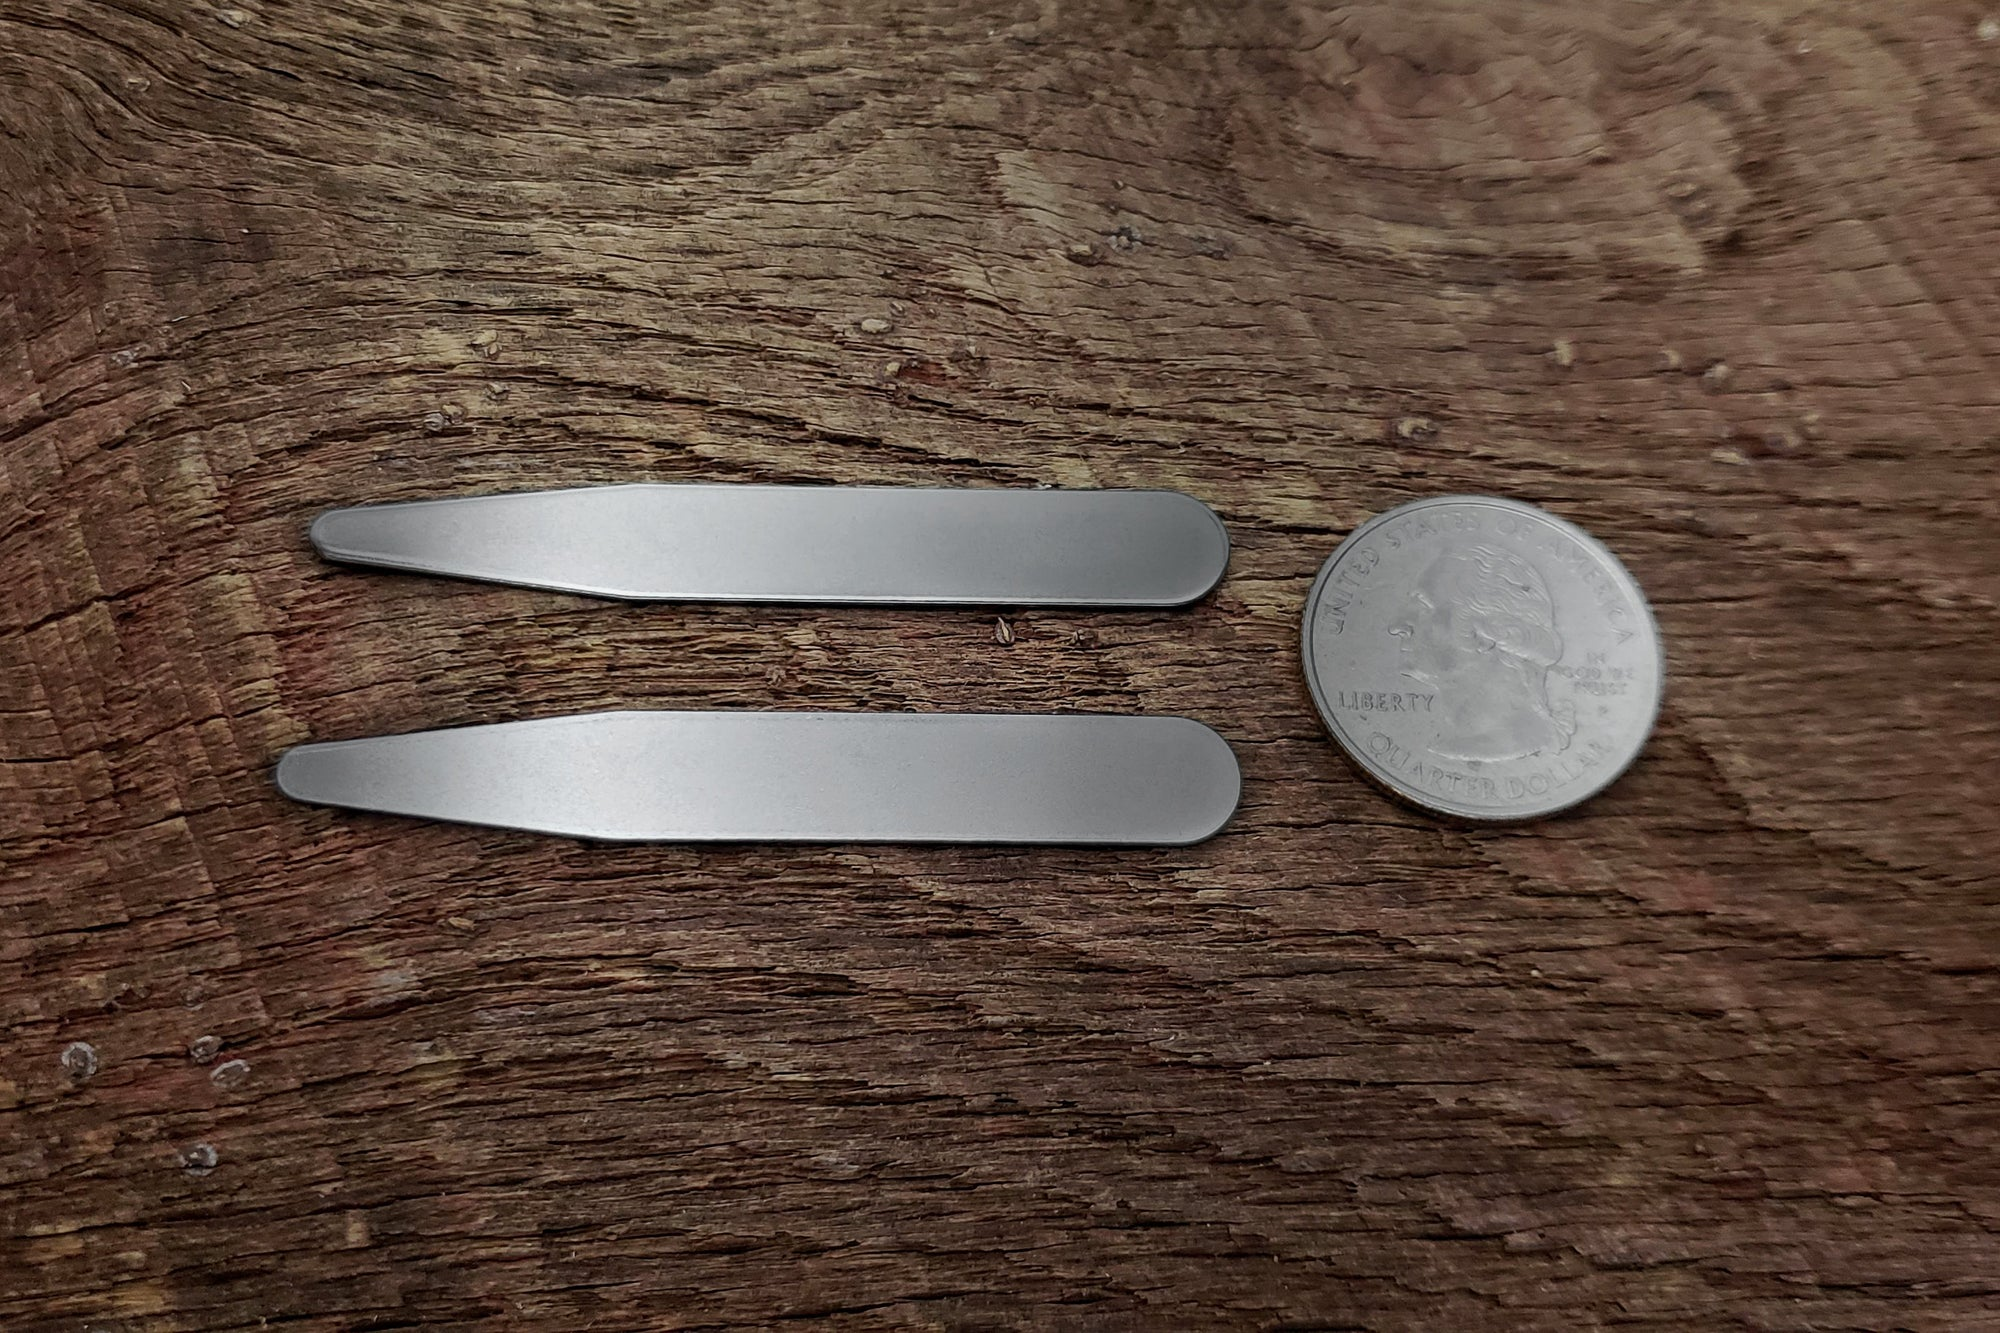 Collar Stays Anniversary Gifts Gifts For Men Groomsmen Gift Personalized Gift Graduation Gift Wedding Fathers Day Gift